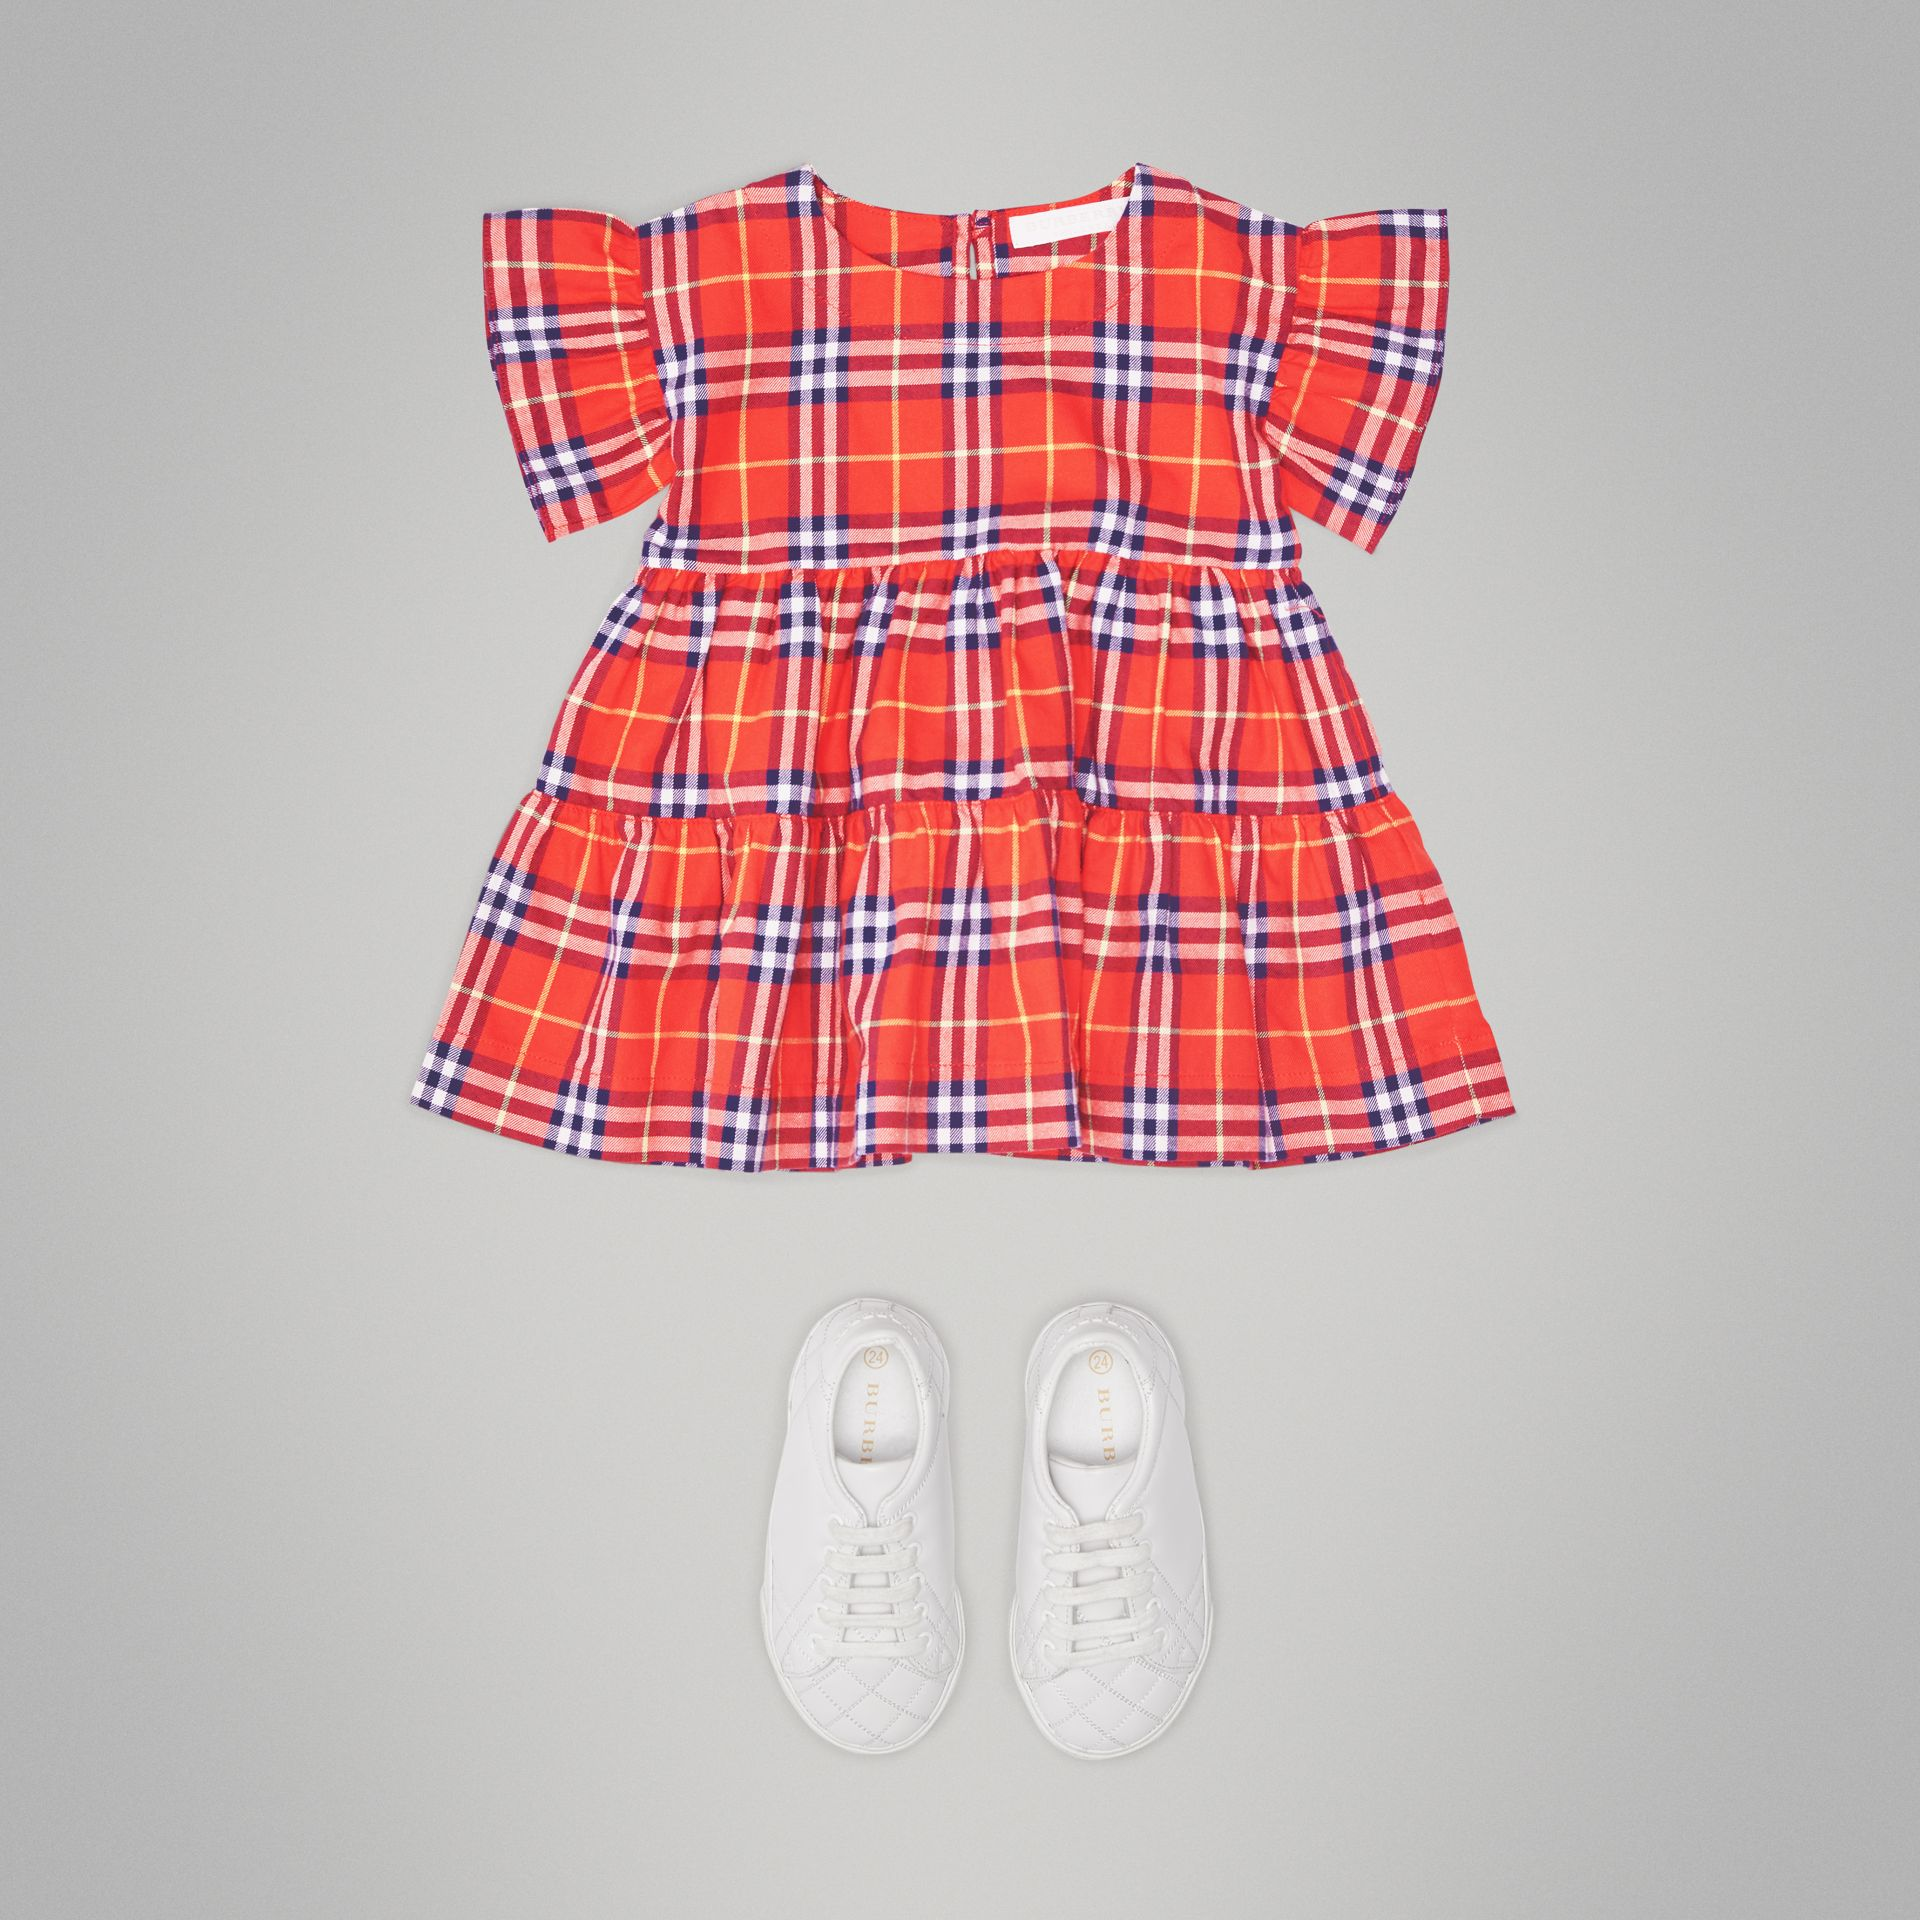 Ruffle Detail Cotton Check Dress in Orange Red - Children | Burberry Australia - gallery image 2